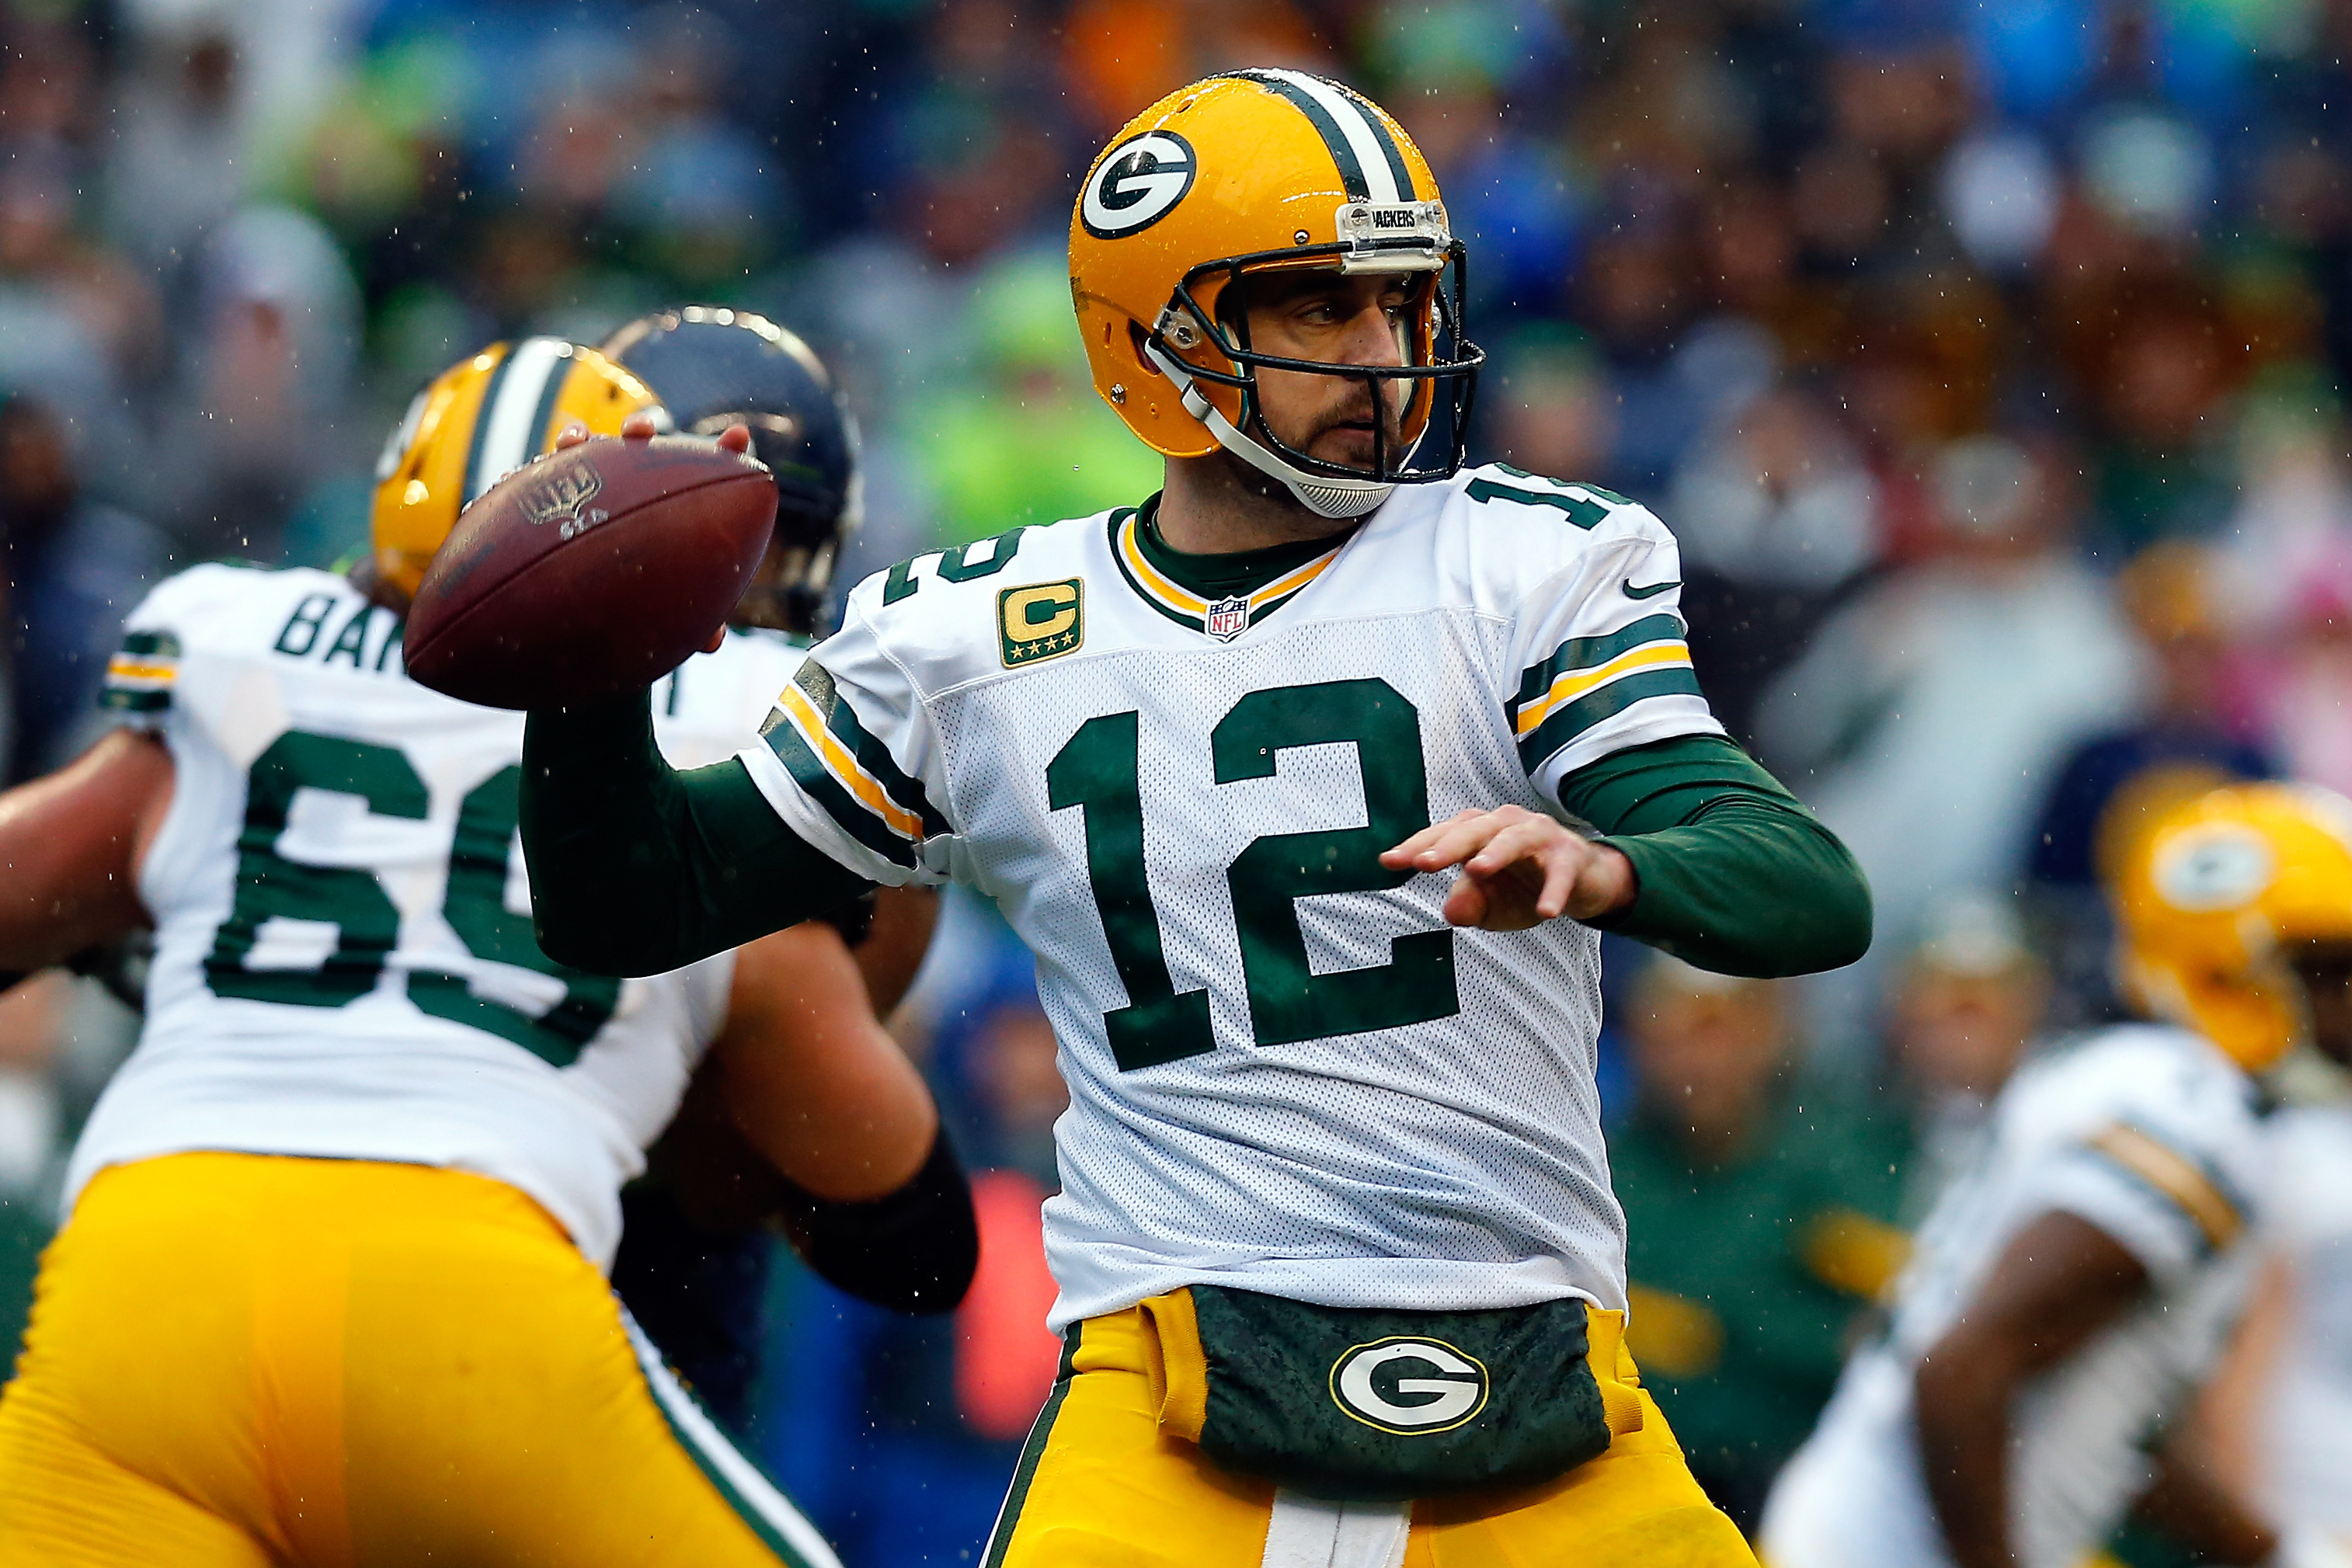 Aaron Rodgers during the 2015 NFC Championship game at CenturyLink Field on Jan. 18, 2015 in Seattle.